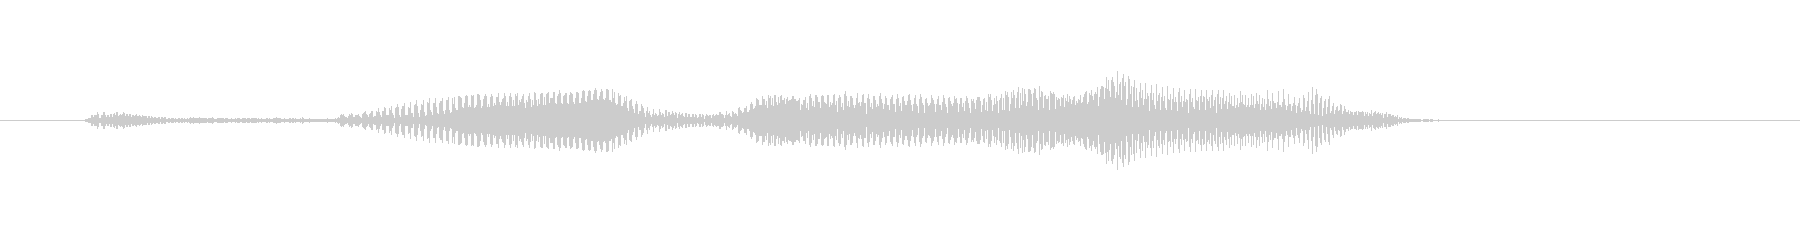 It's behind. The voice of a 5-year-old boy.'s unreproduced waveform